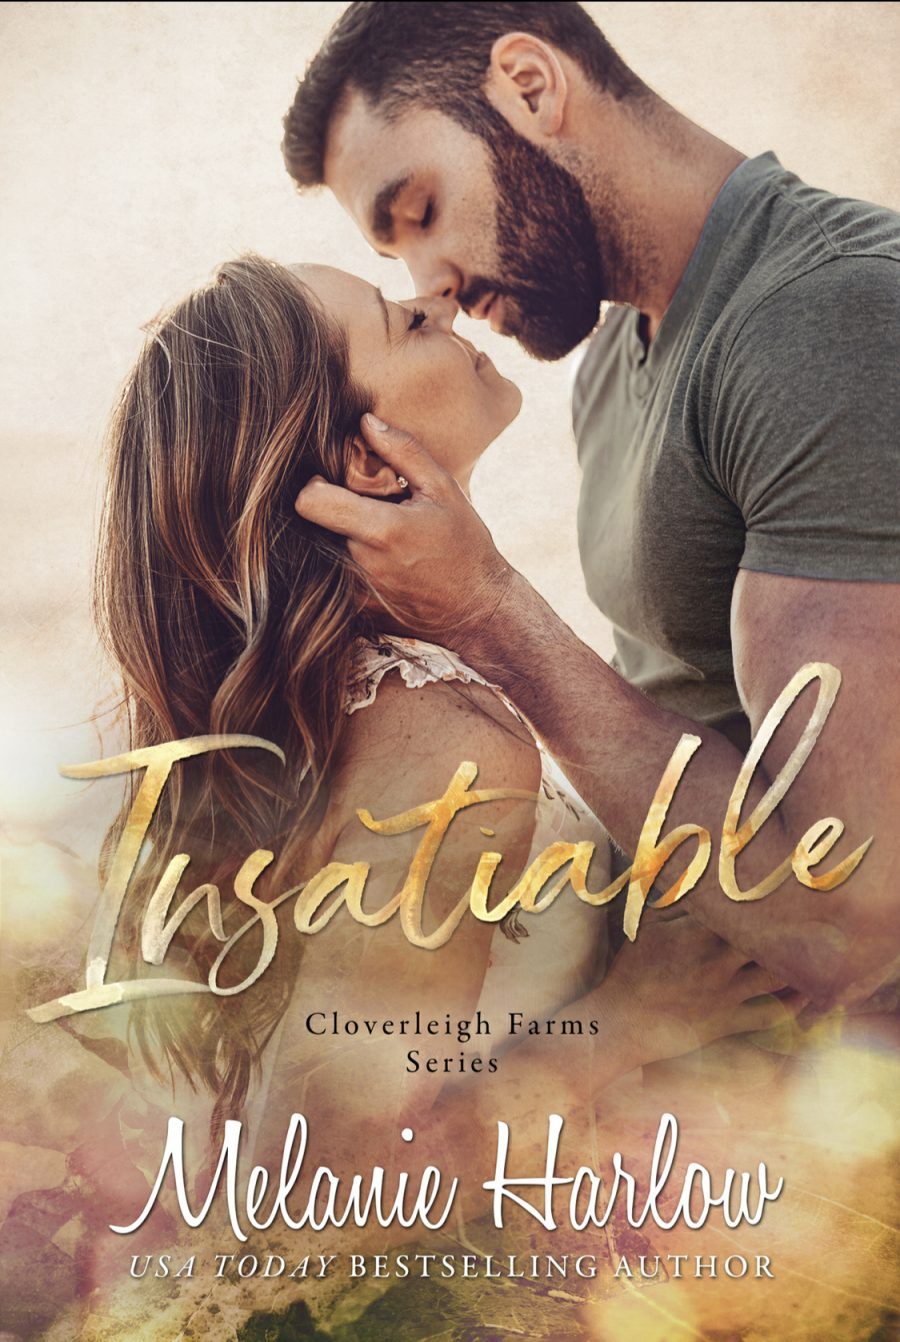 Insatiable (Cloverleigh Farms Series) by Melanie Harlow - A Book Review #BookReview #Romance #StandAlone #HEA #Sweet #FriendsToLovers #KindleUnlimited #KU #4Stars